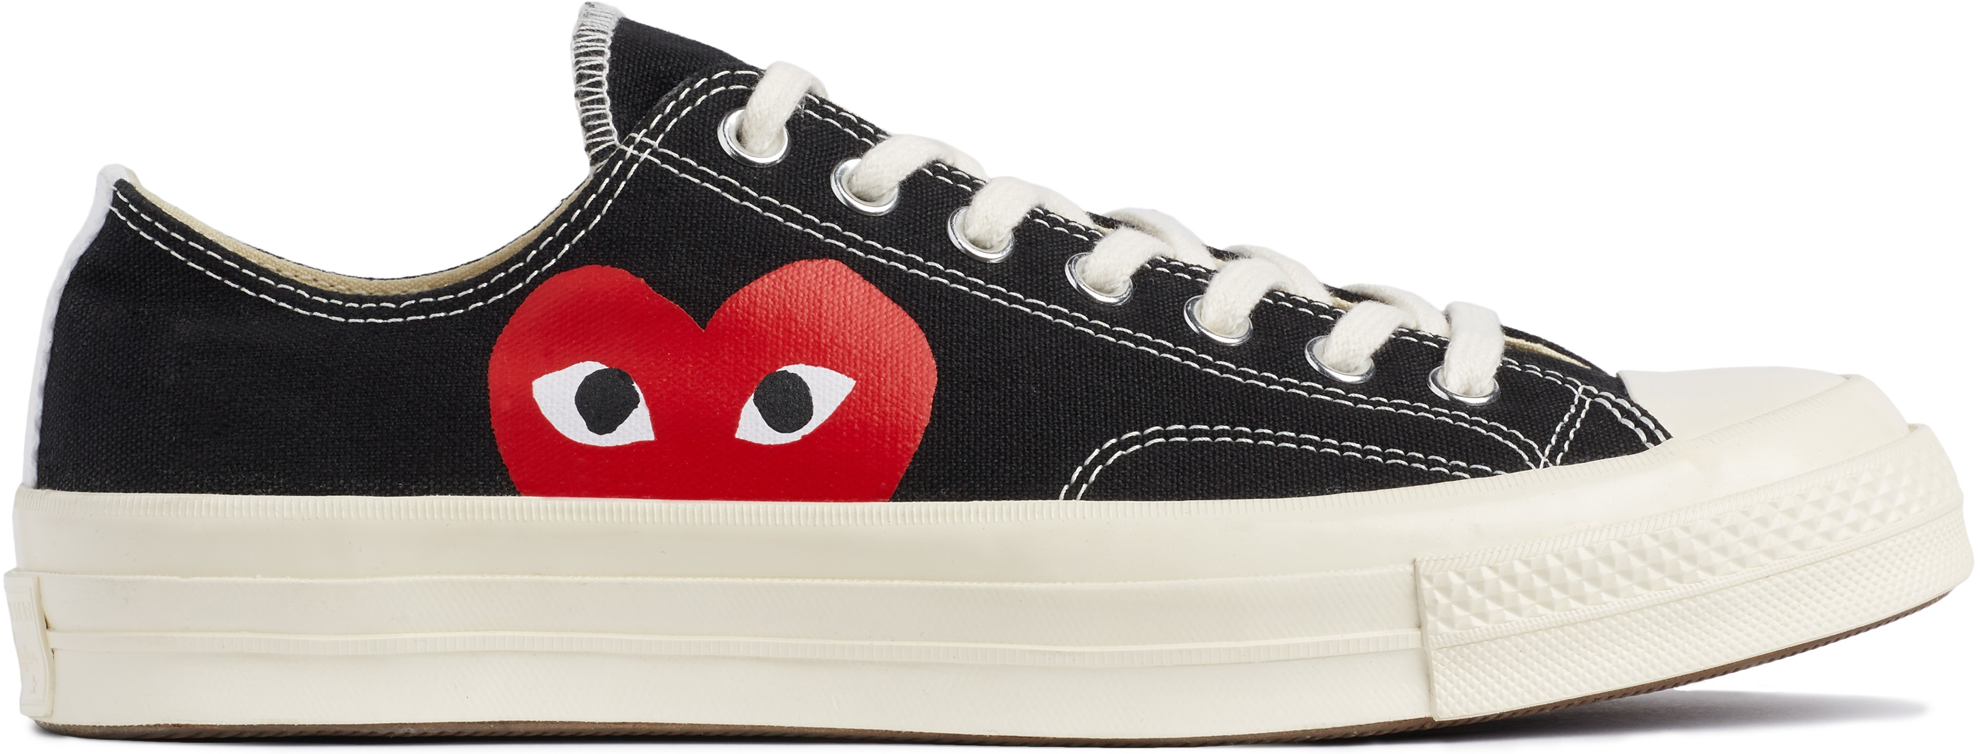 converse chuck taylor all star 70s ox comme des garcons chuck taylor logo history chuck taylor logo photoshop